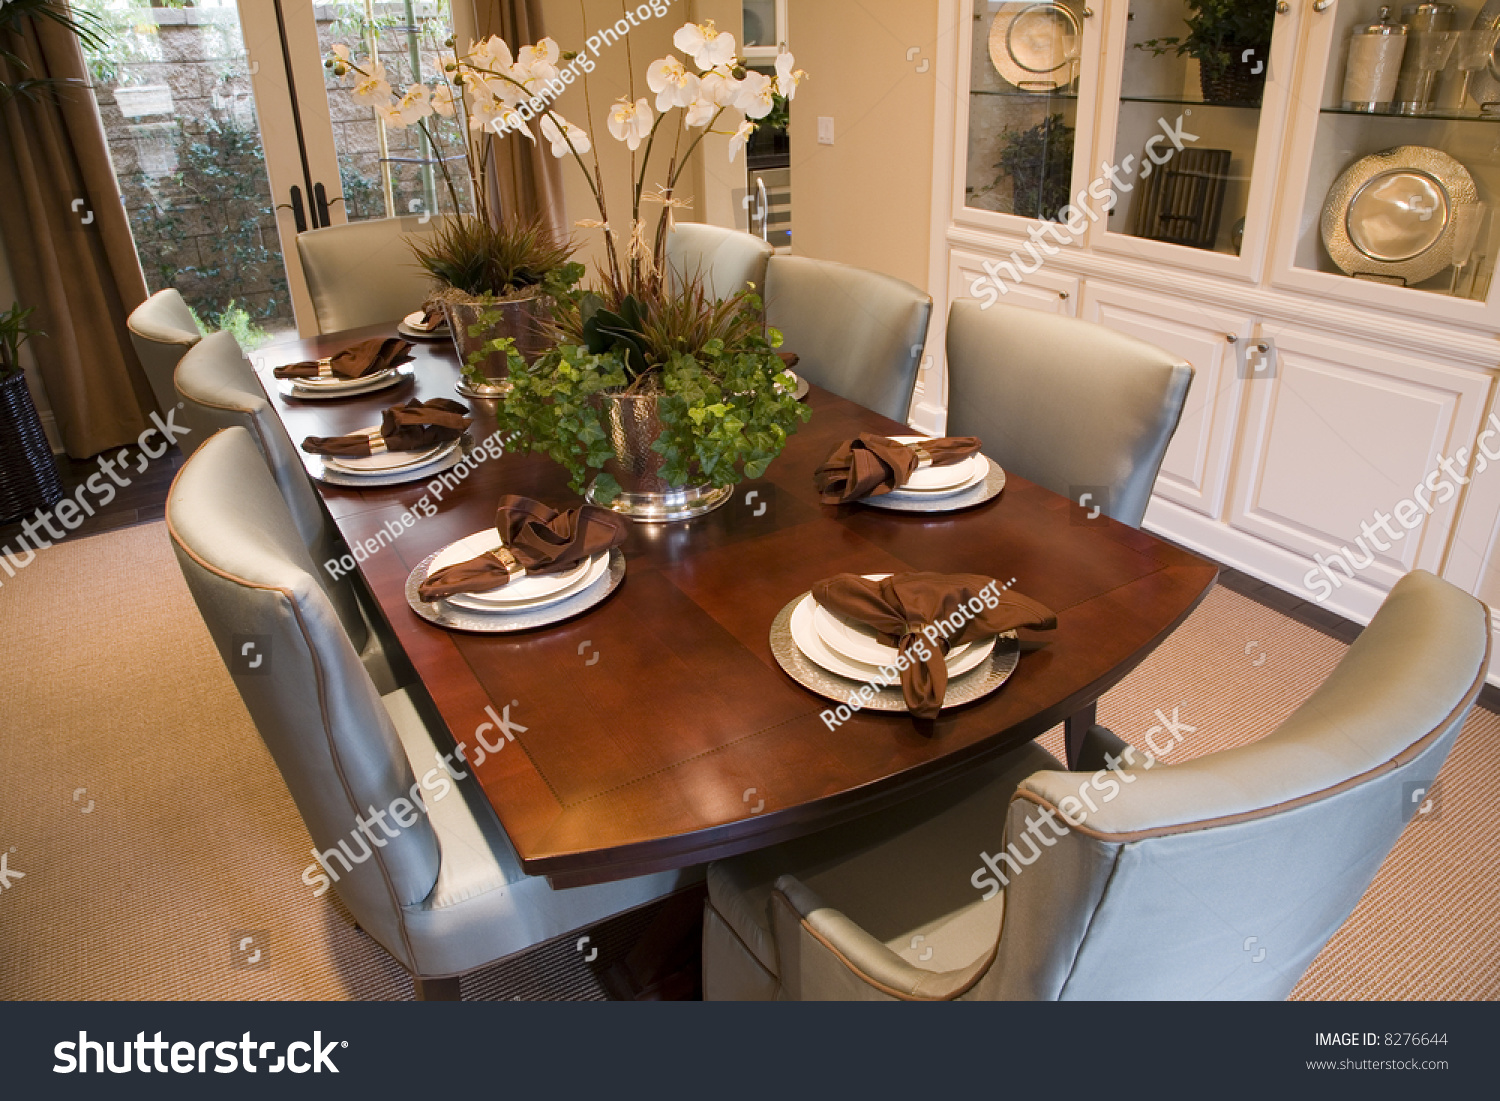 Dining table accessories - Festive Dining Table With Luxurious Accessories And Decor